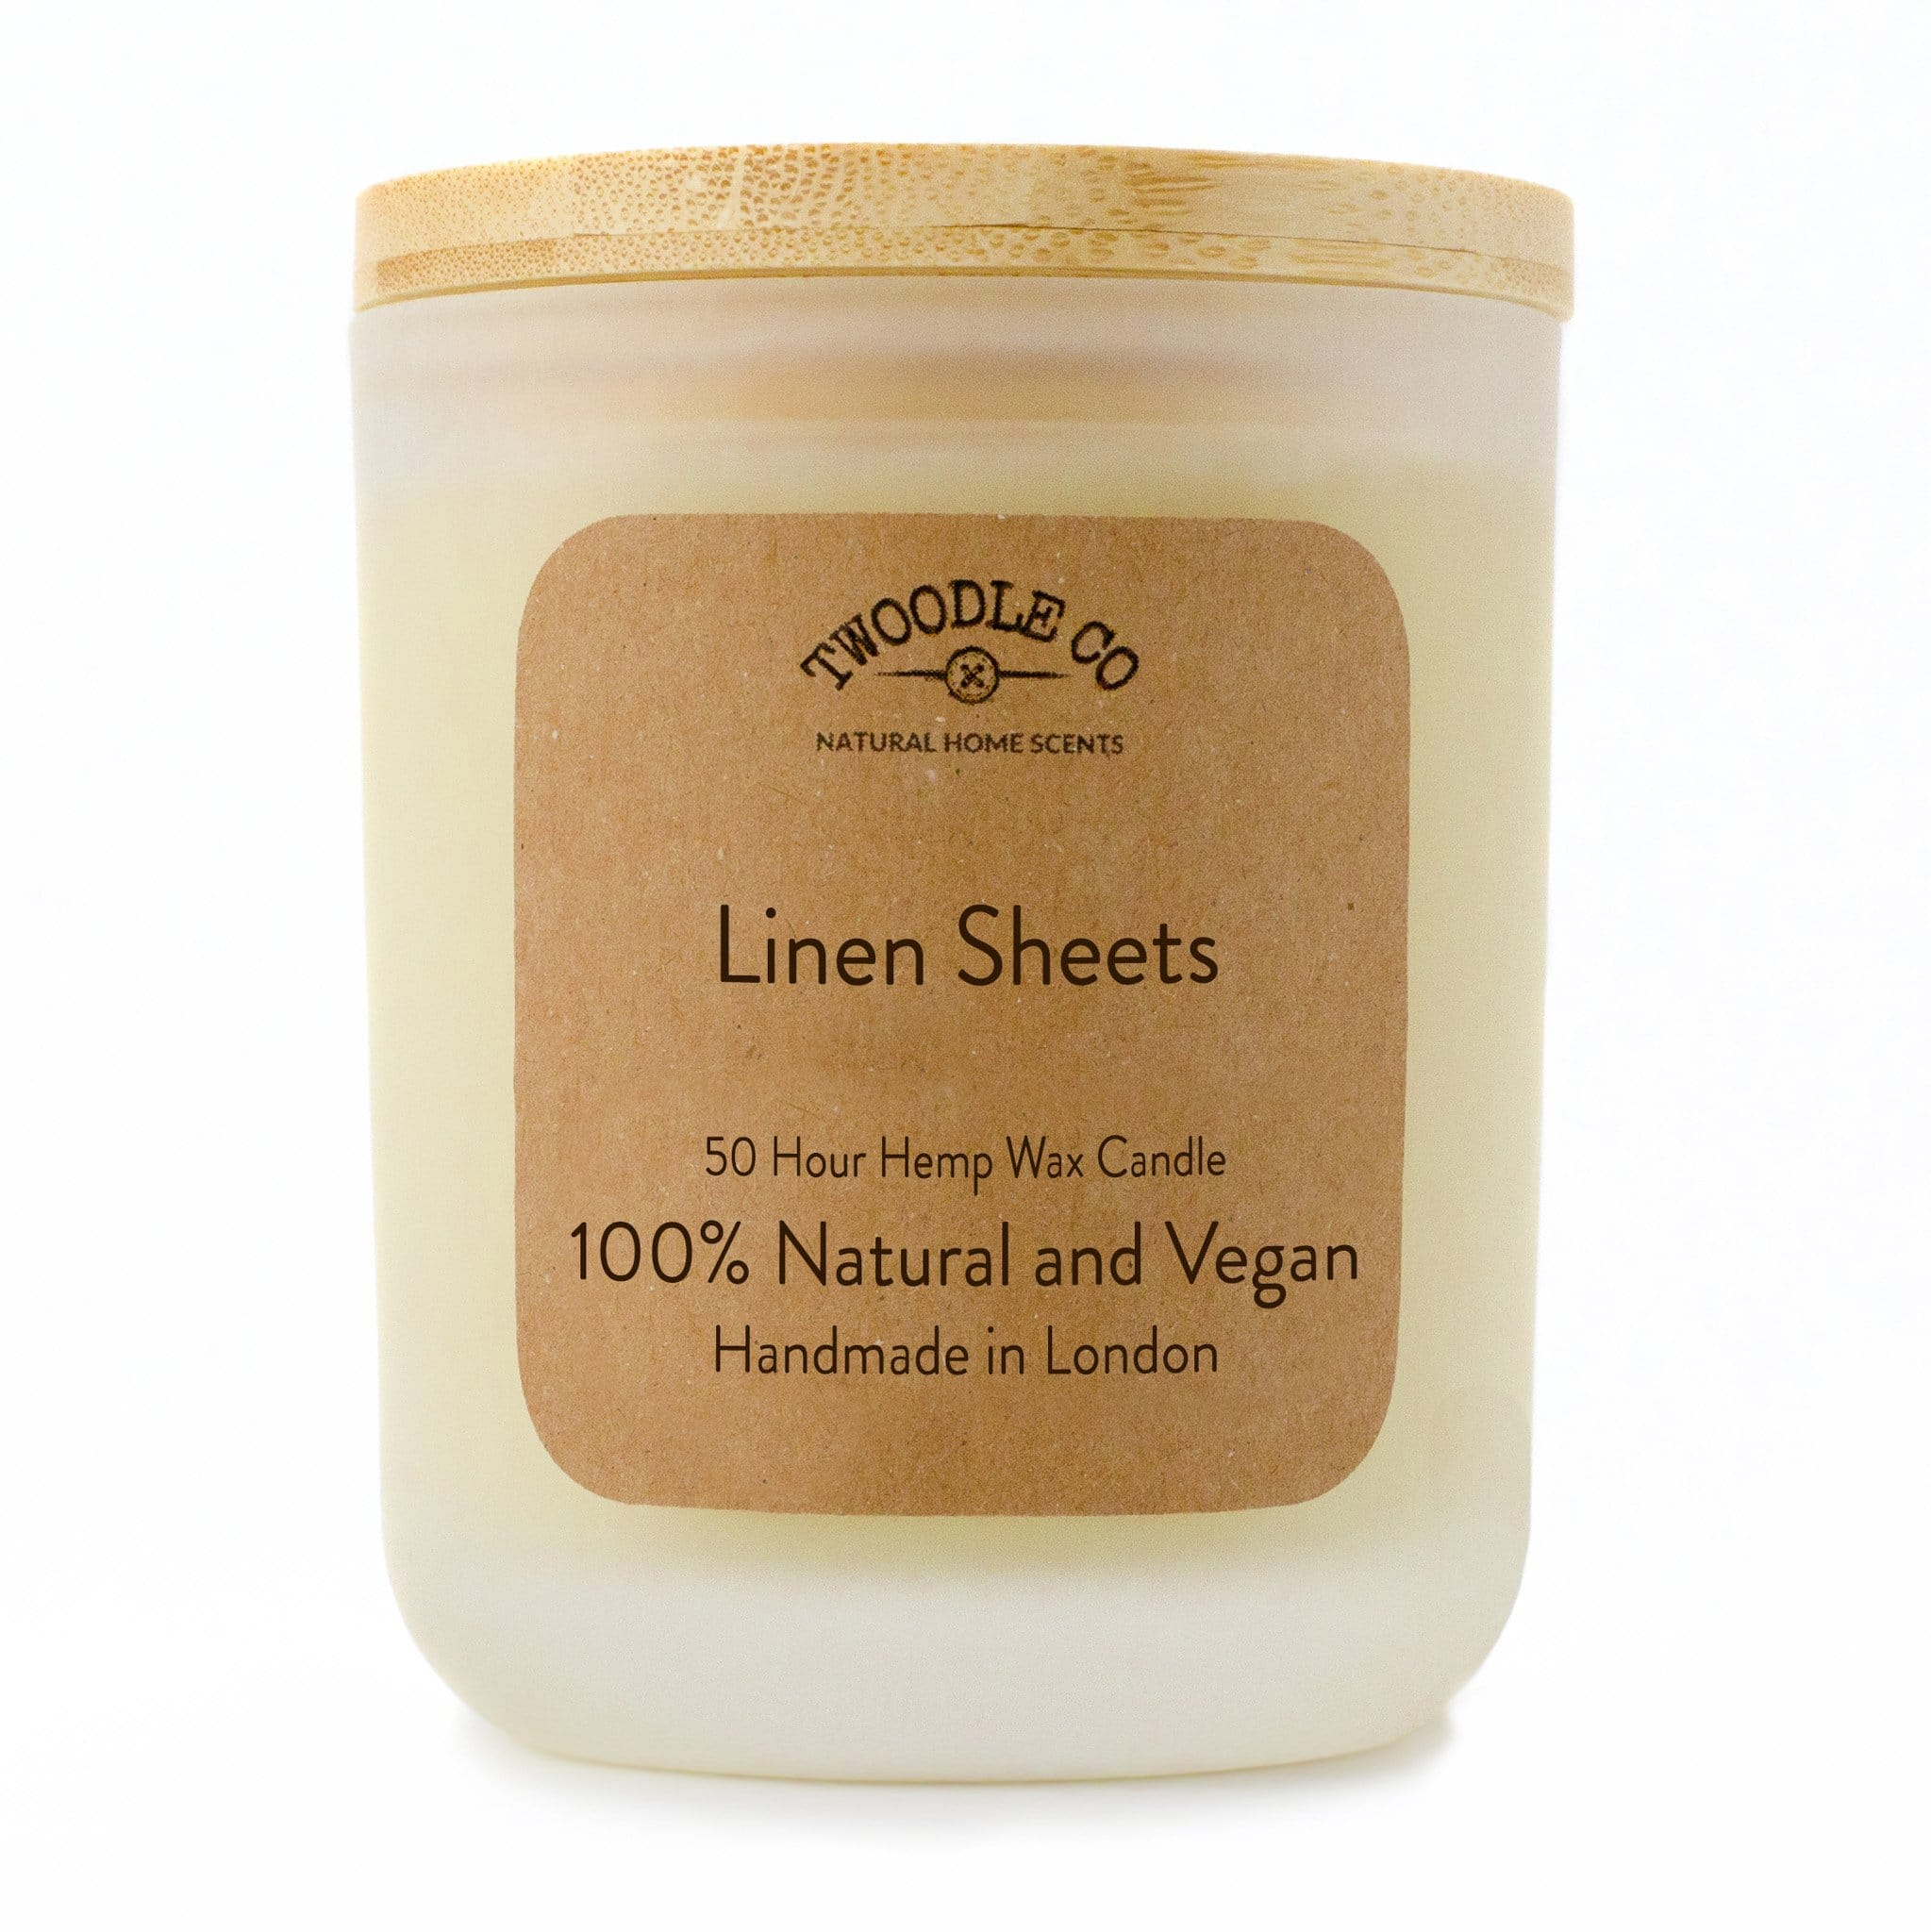 Linen Sheets | Medium Hamper Gift Set